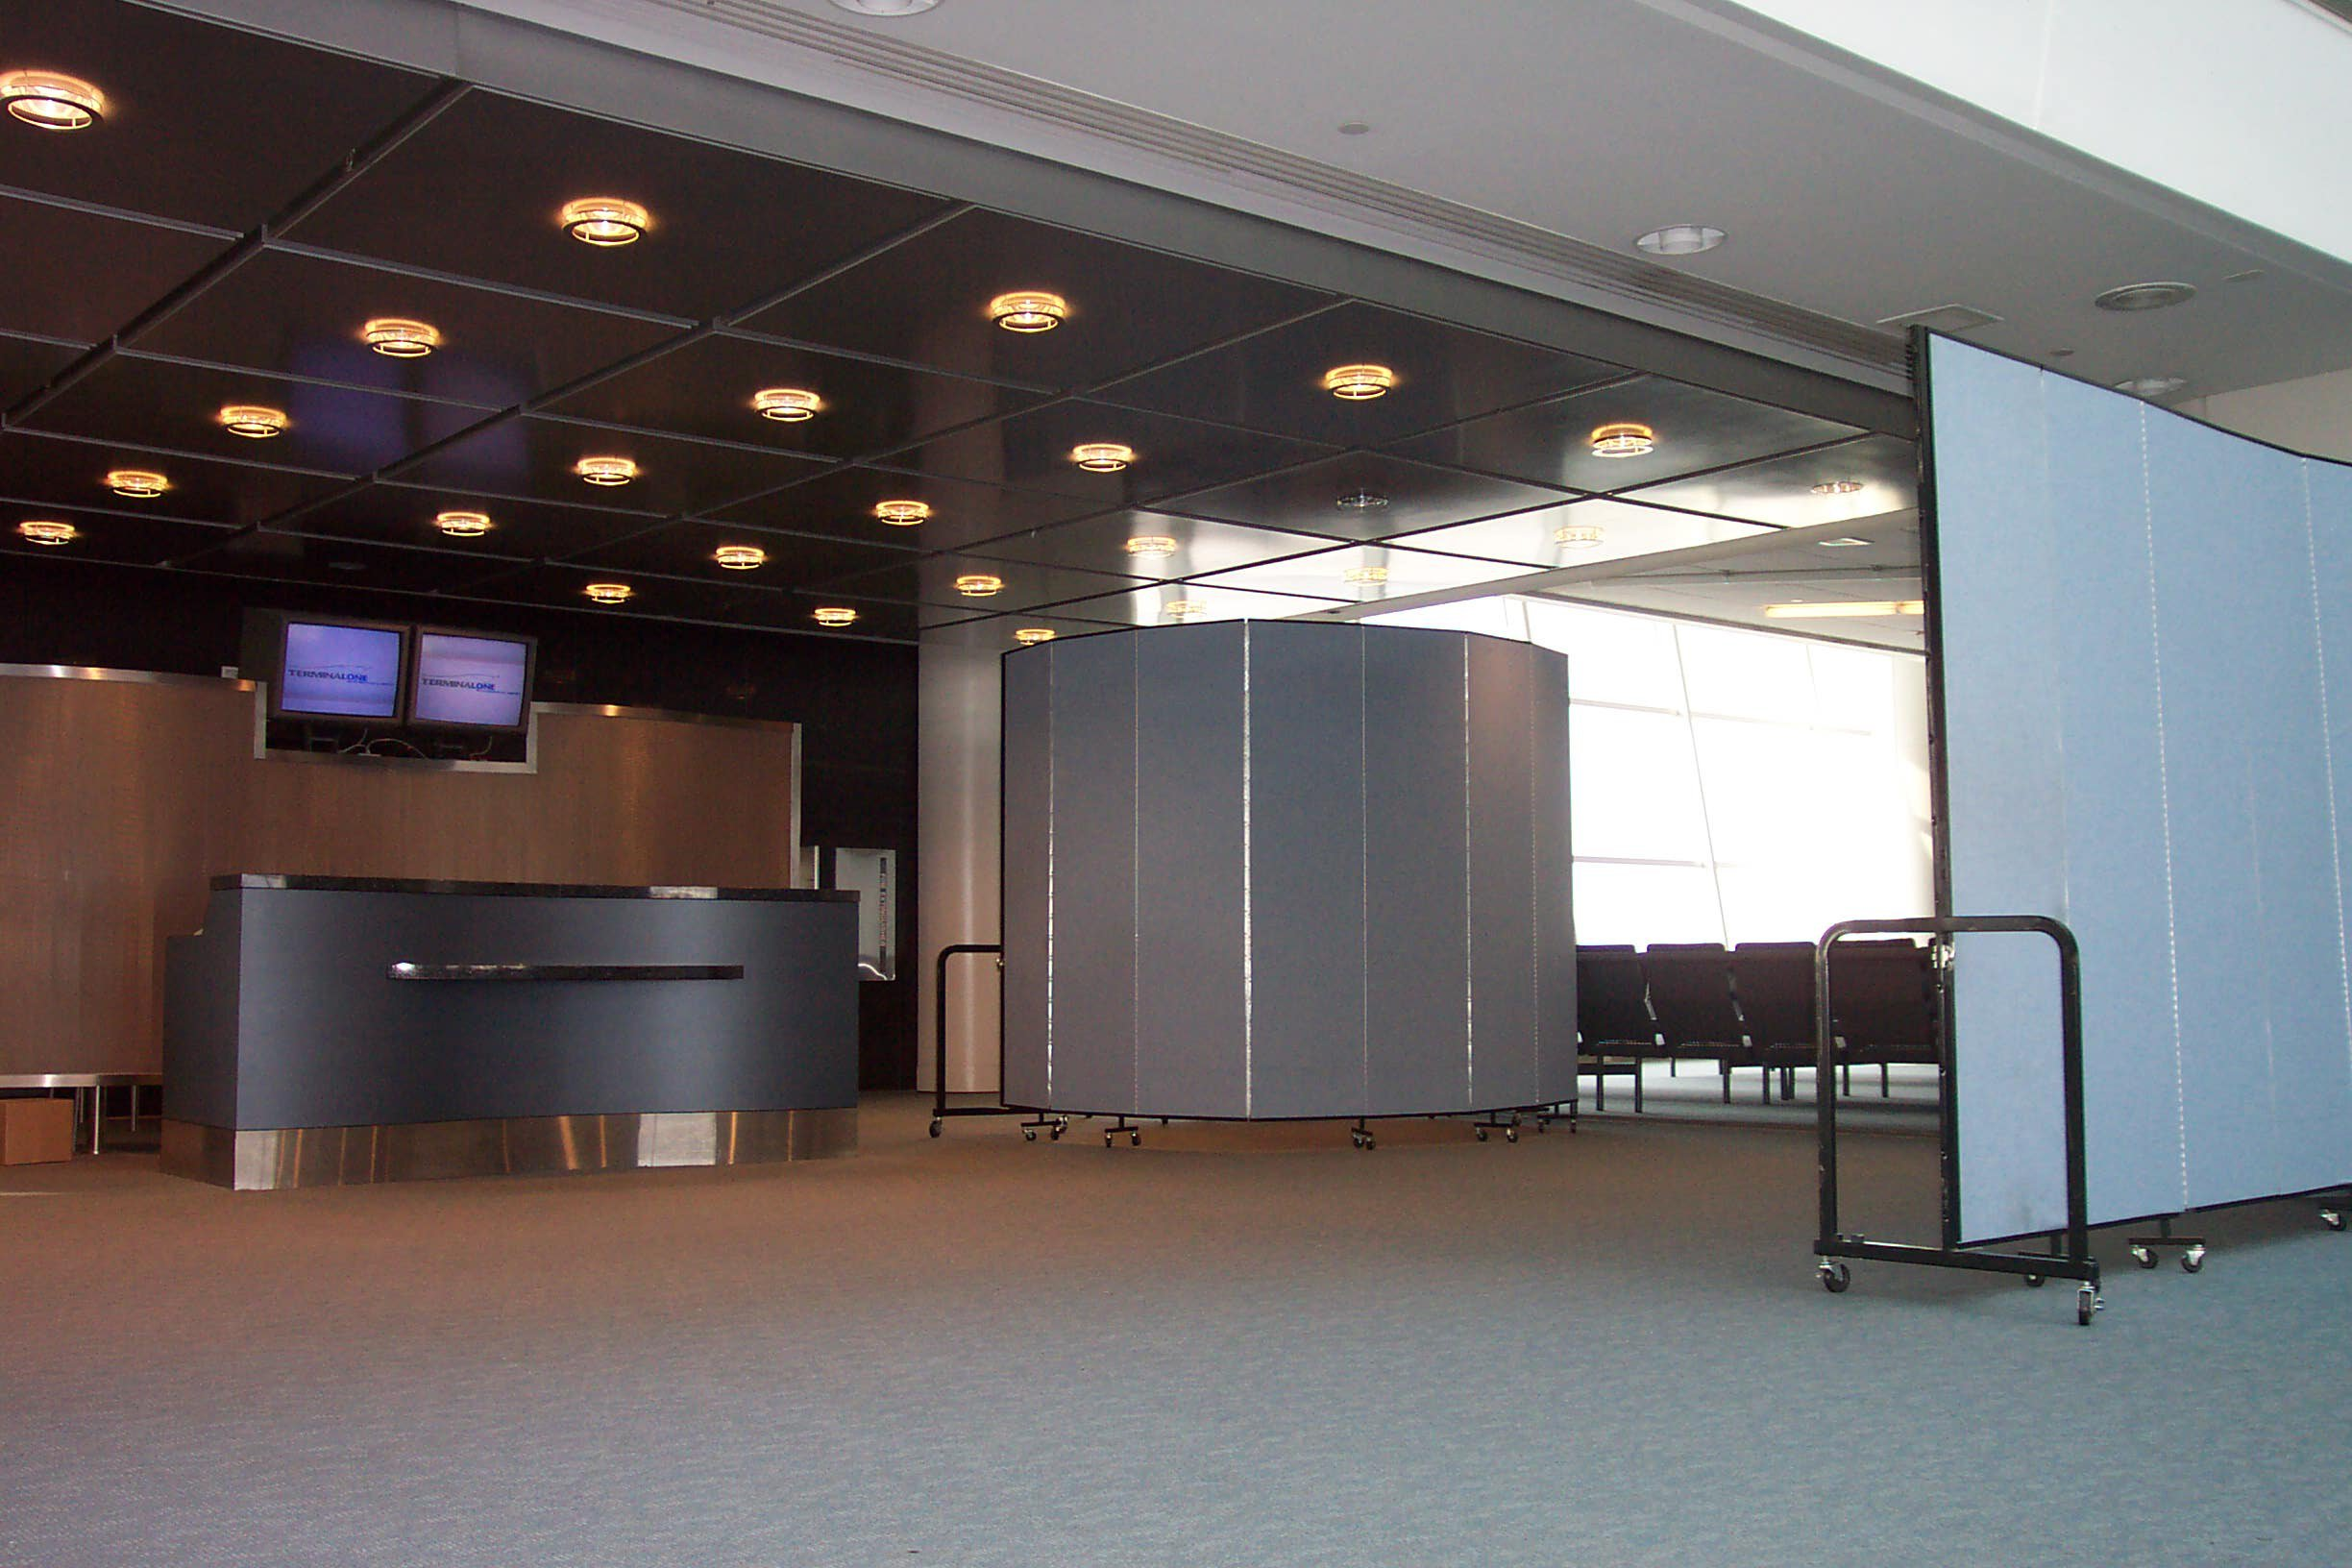 A screening area created at a departure gate